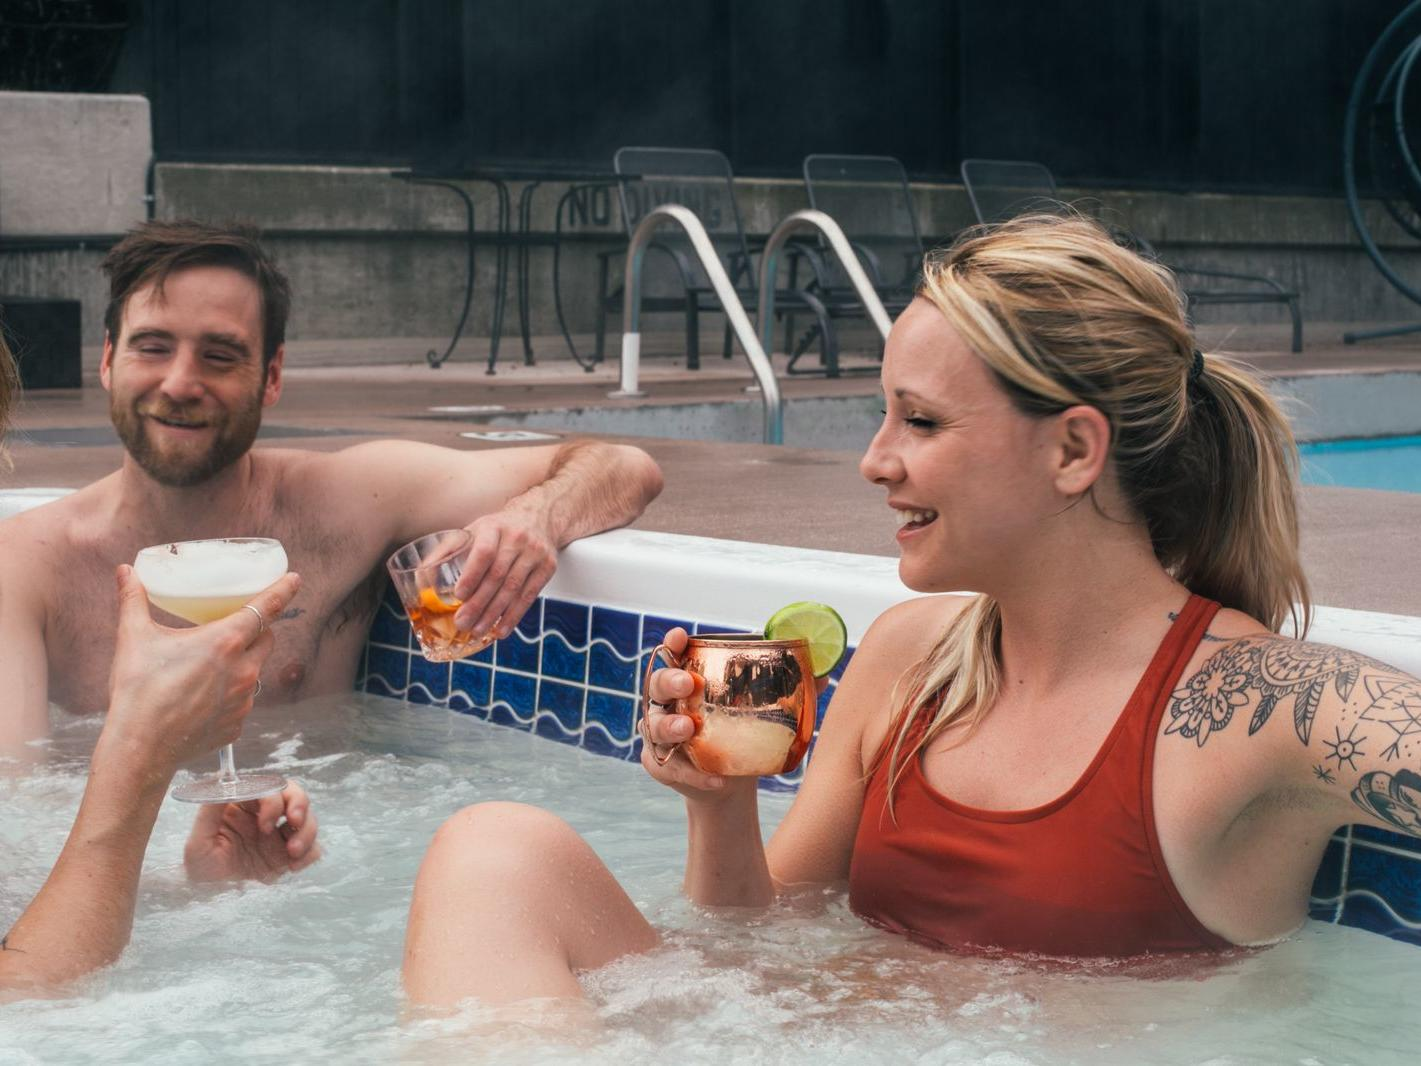 Friends in a hot tub enjoying cocktails.